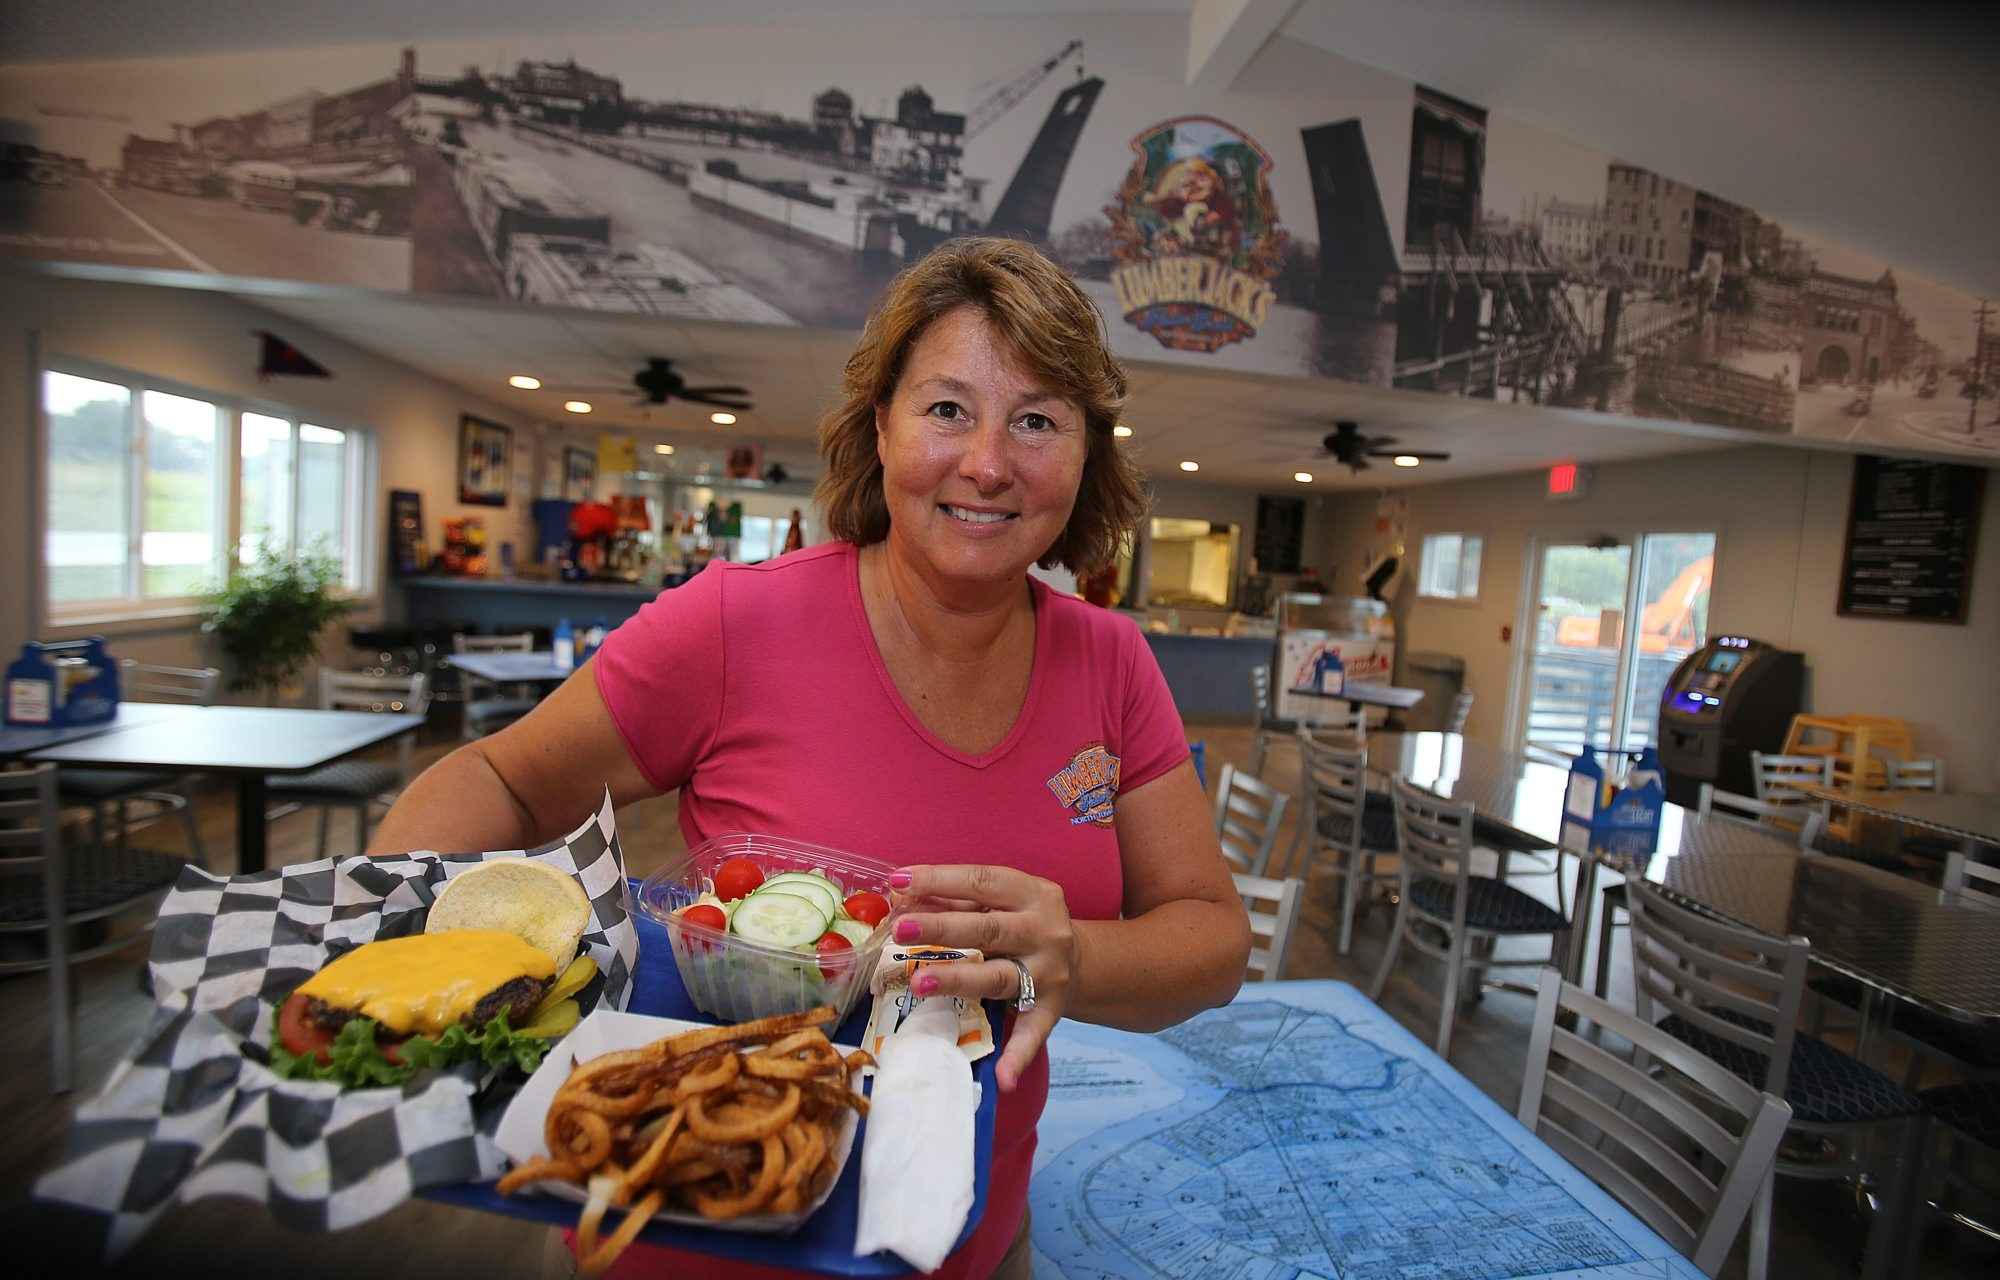 Manager Mary Lou Pieper shows off cheeseburger platter with fresh-cut curly-Q fries at Lumberjack's Patio Grill on the shores of the Niagara River in North Tonawanda.